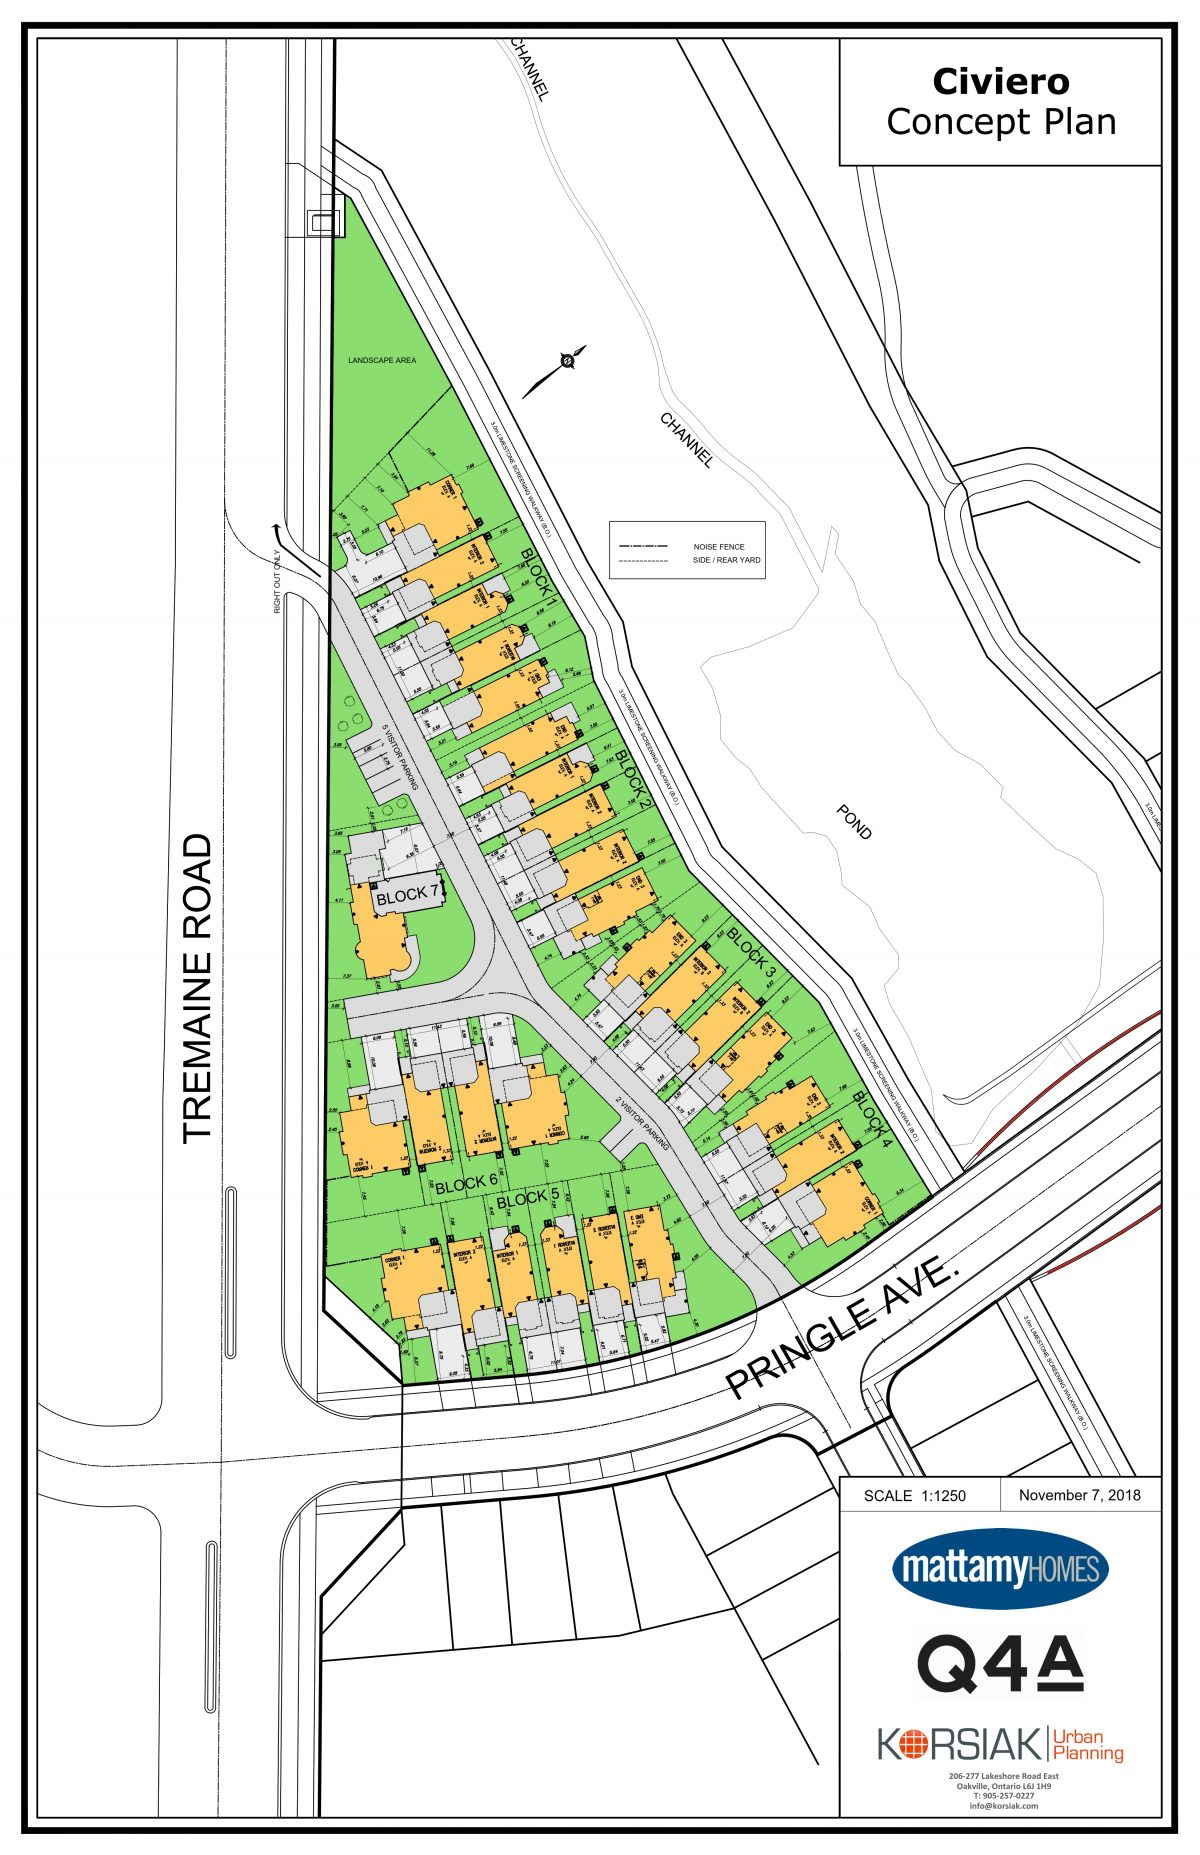 Korsiak Urban Planning - Milton Portfolio - Tremaine Road, Greenfield Development - Milton, Ontario